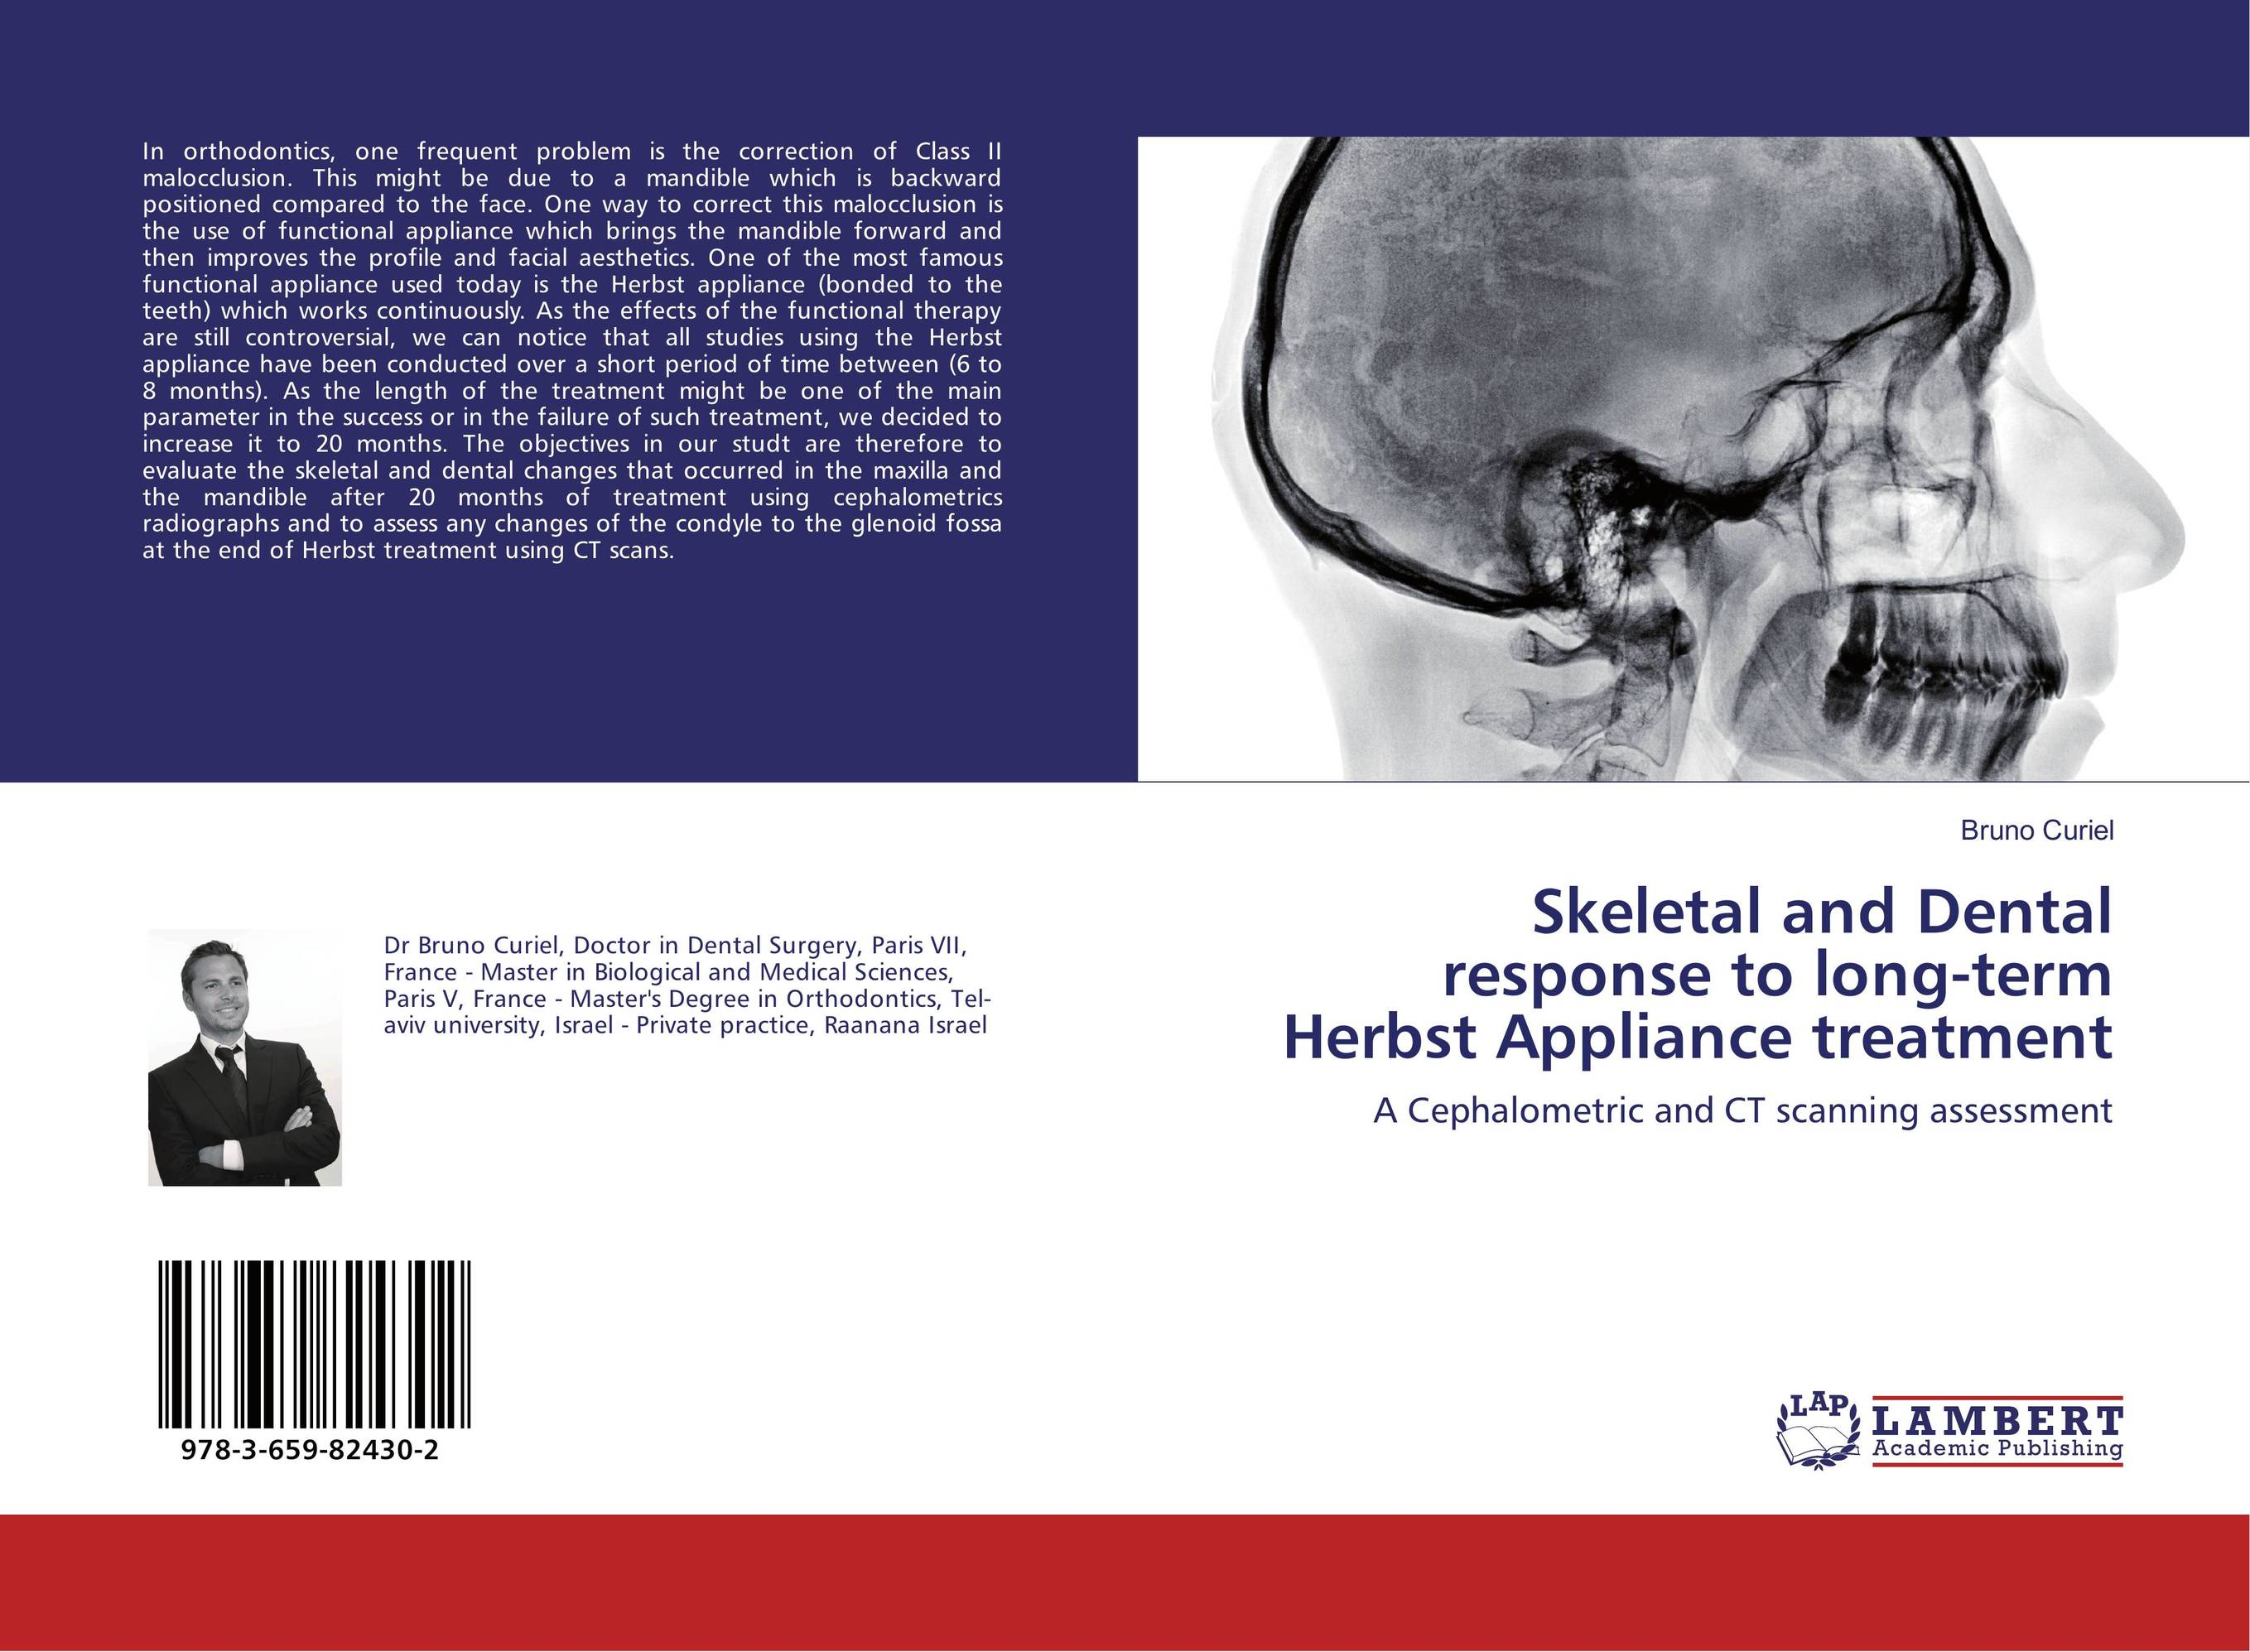 Skeletal and Dental response to long-term Herbst Appliance treatment